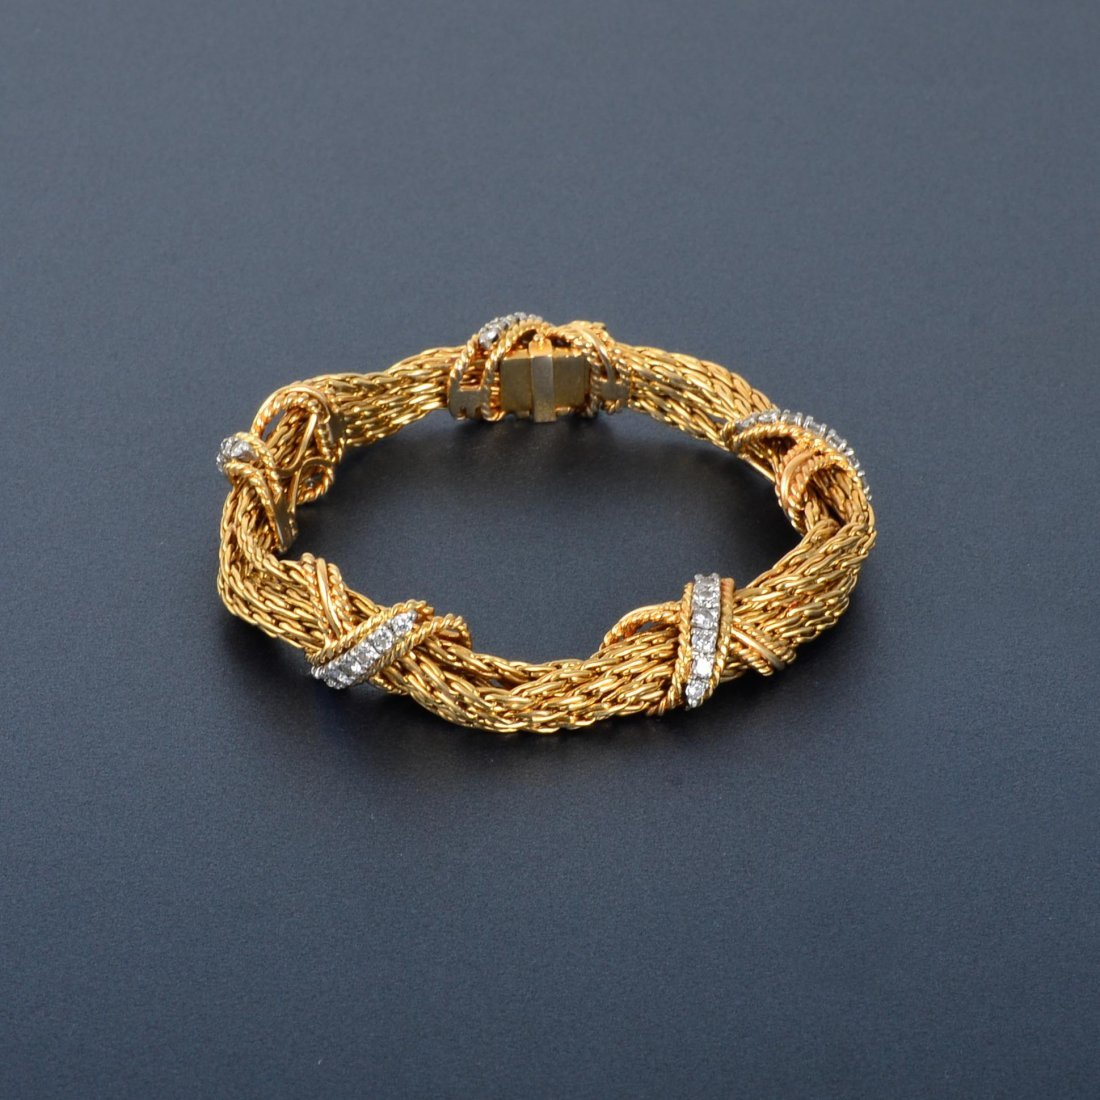 22: 14K Diamond Rope Chain Bracelet